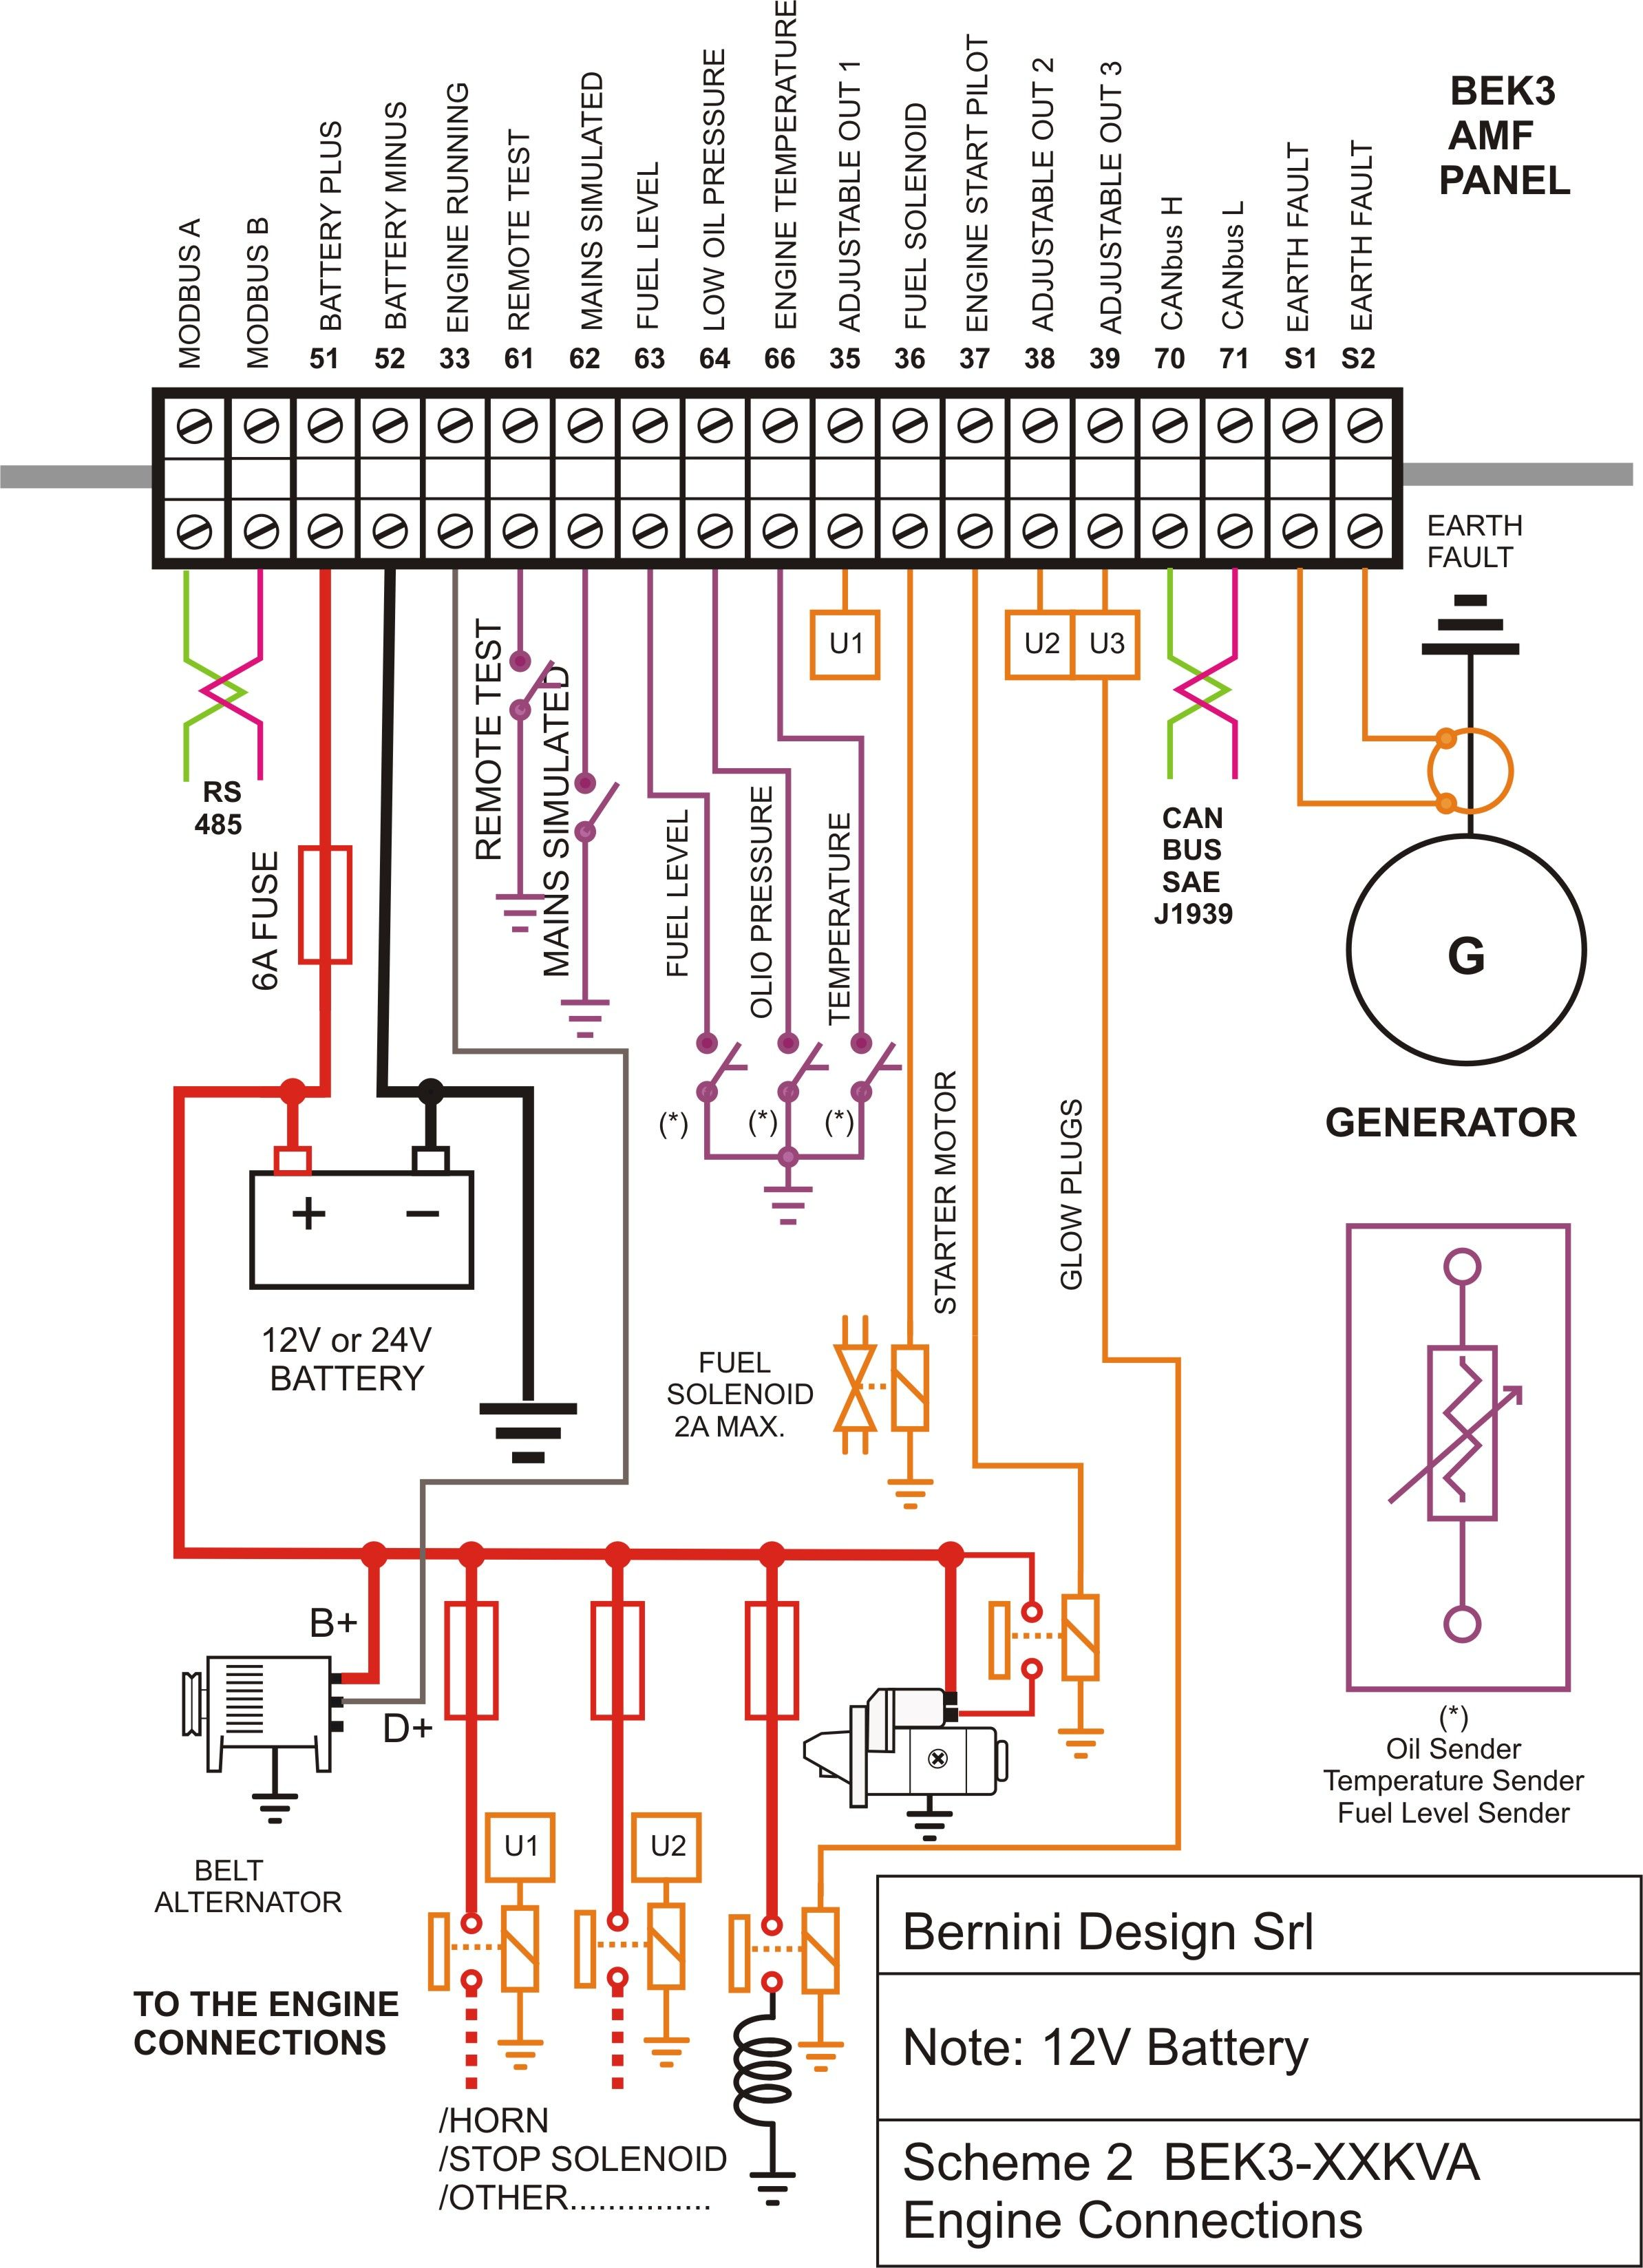 diesel generator control panel wiring diagram Engine